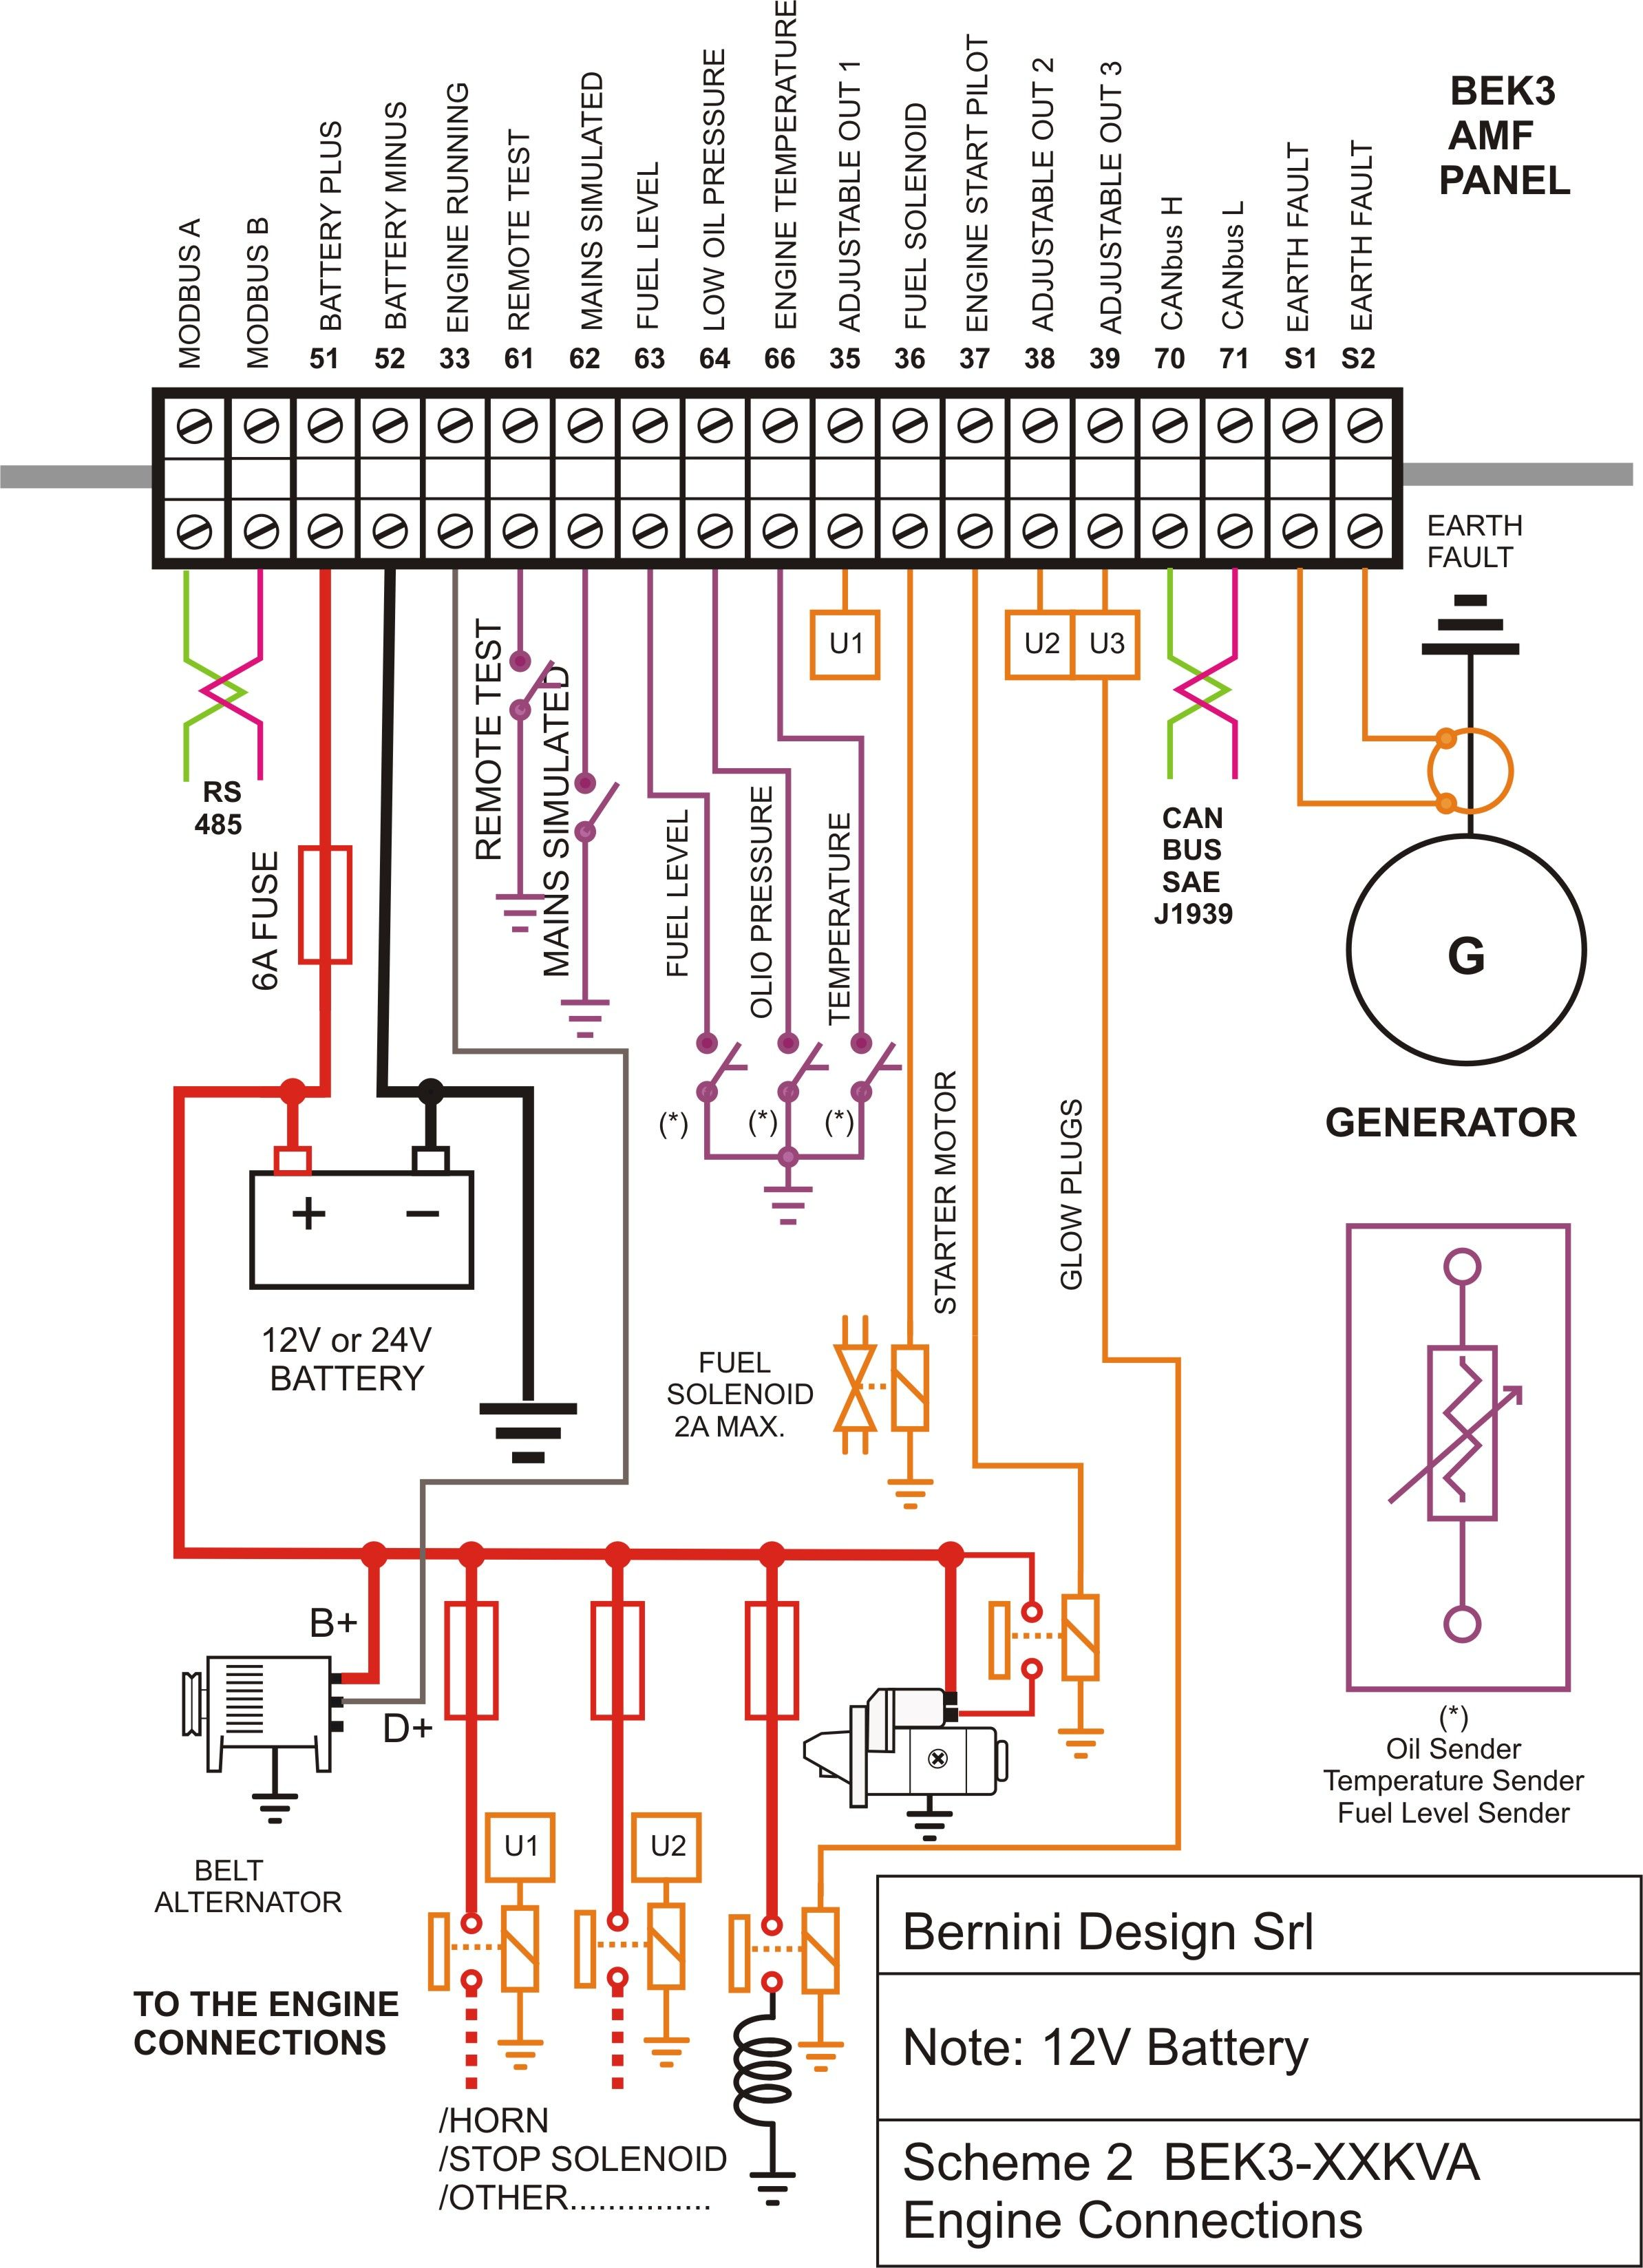 diesel generator control panel wiring diagram Engine